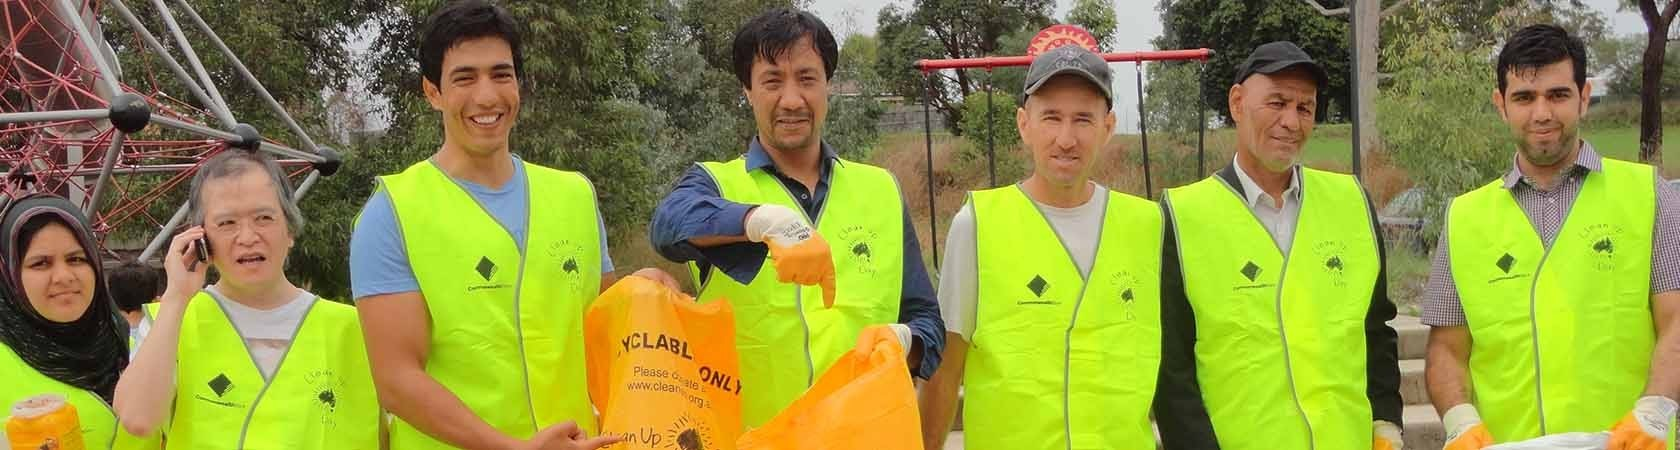 clea up australia how to clean up